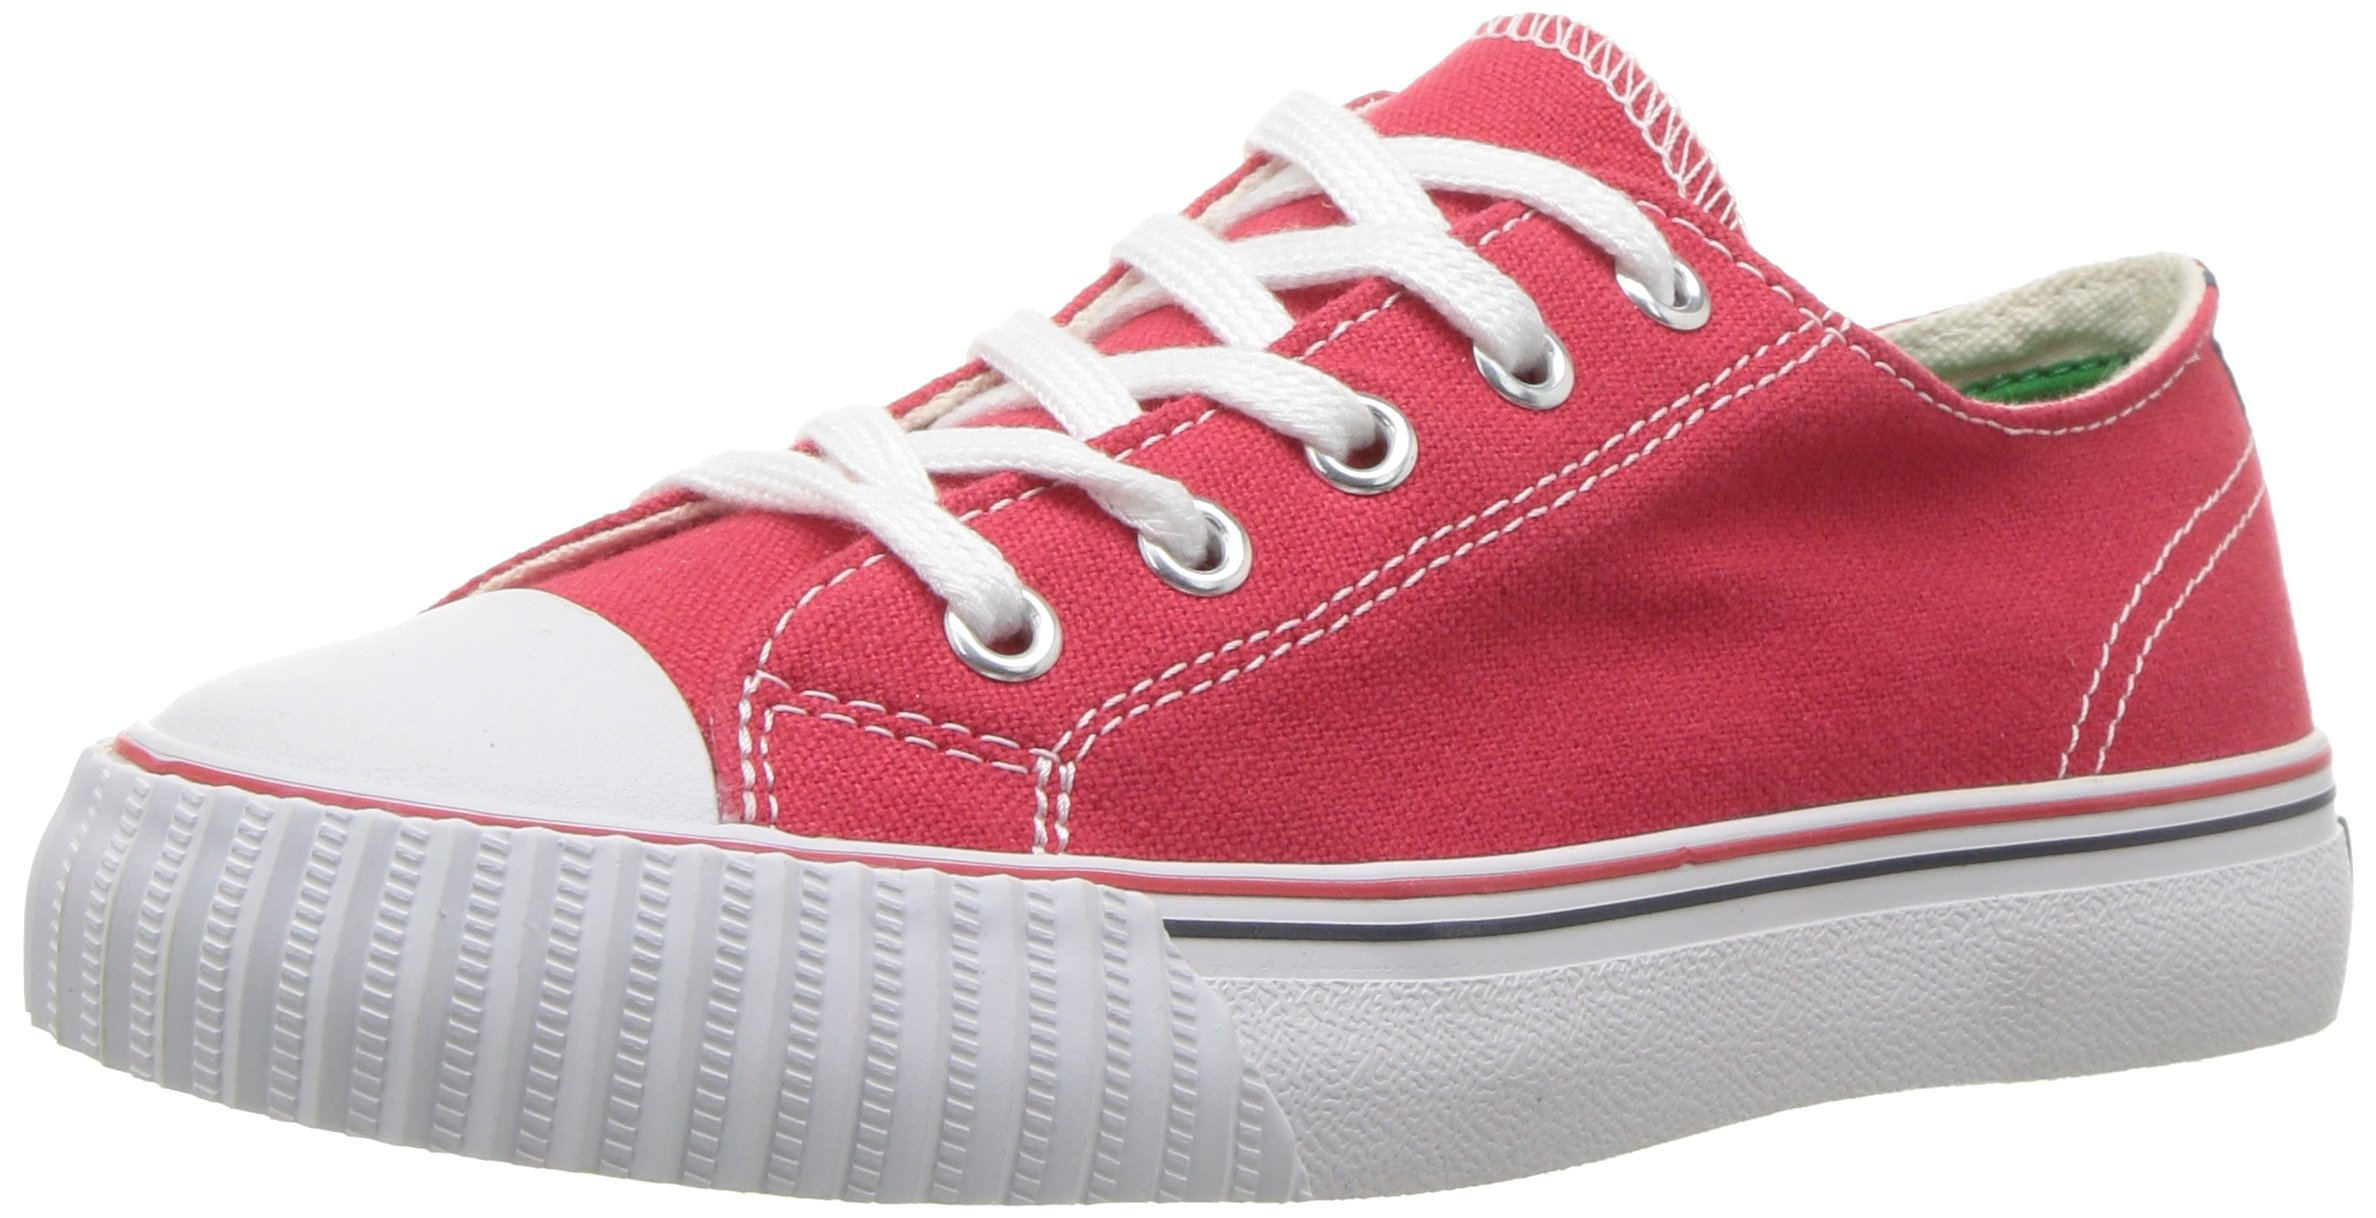 PF Flyers Boys' KC2002RD, Red, 1 Medium US Little Kid